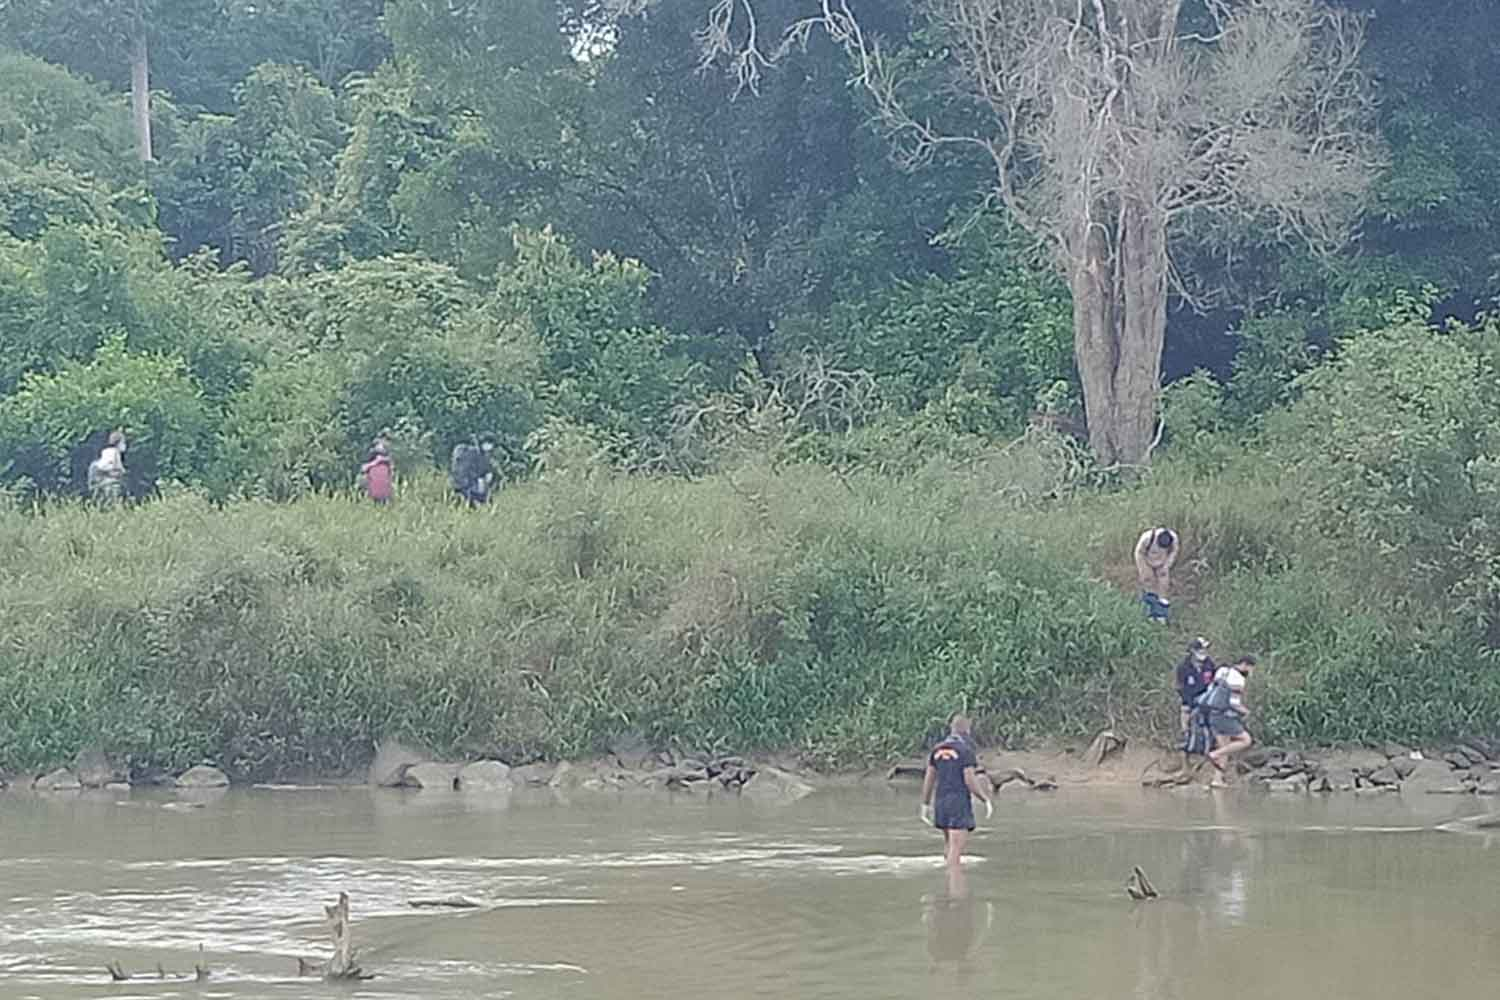 Thai workers wade across the Sungai Kolok river, making an illegal crossing back home to Thailand, in Narathiwat on Wednesday morning. (Photo: Waedao Harai)